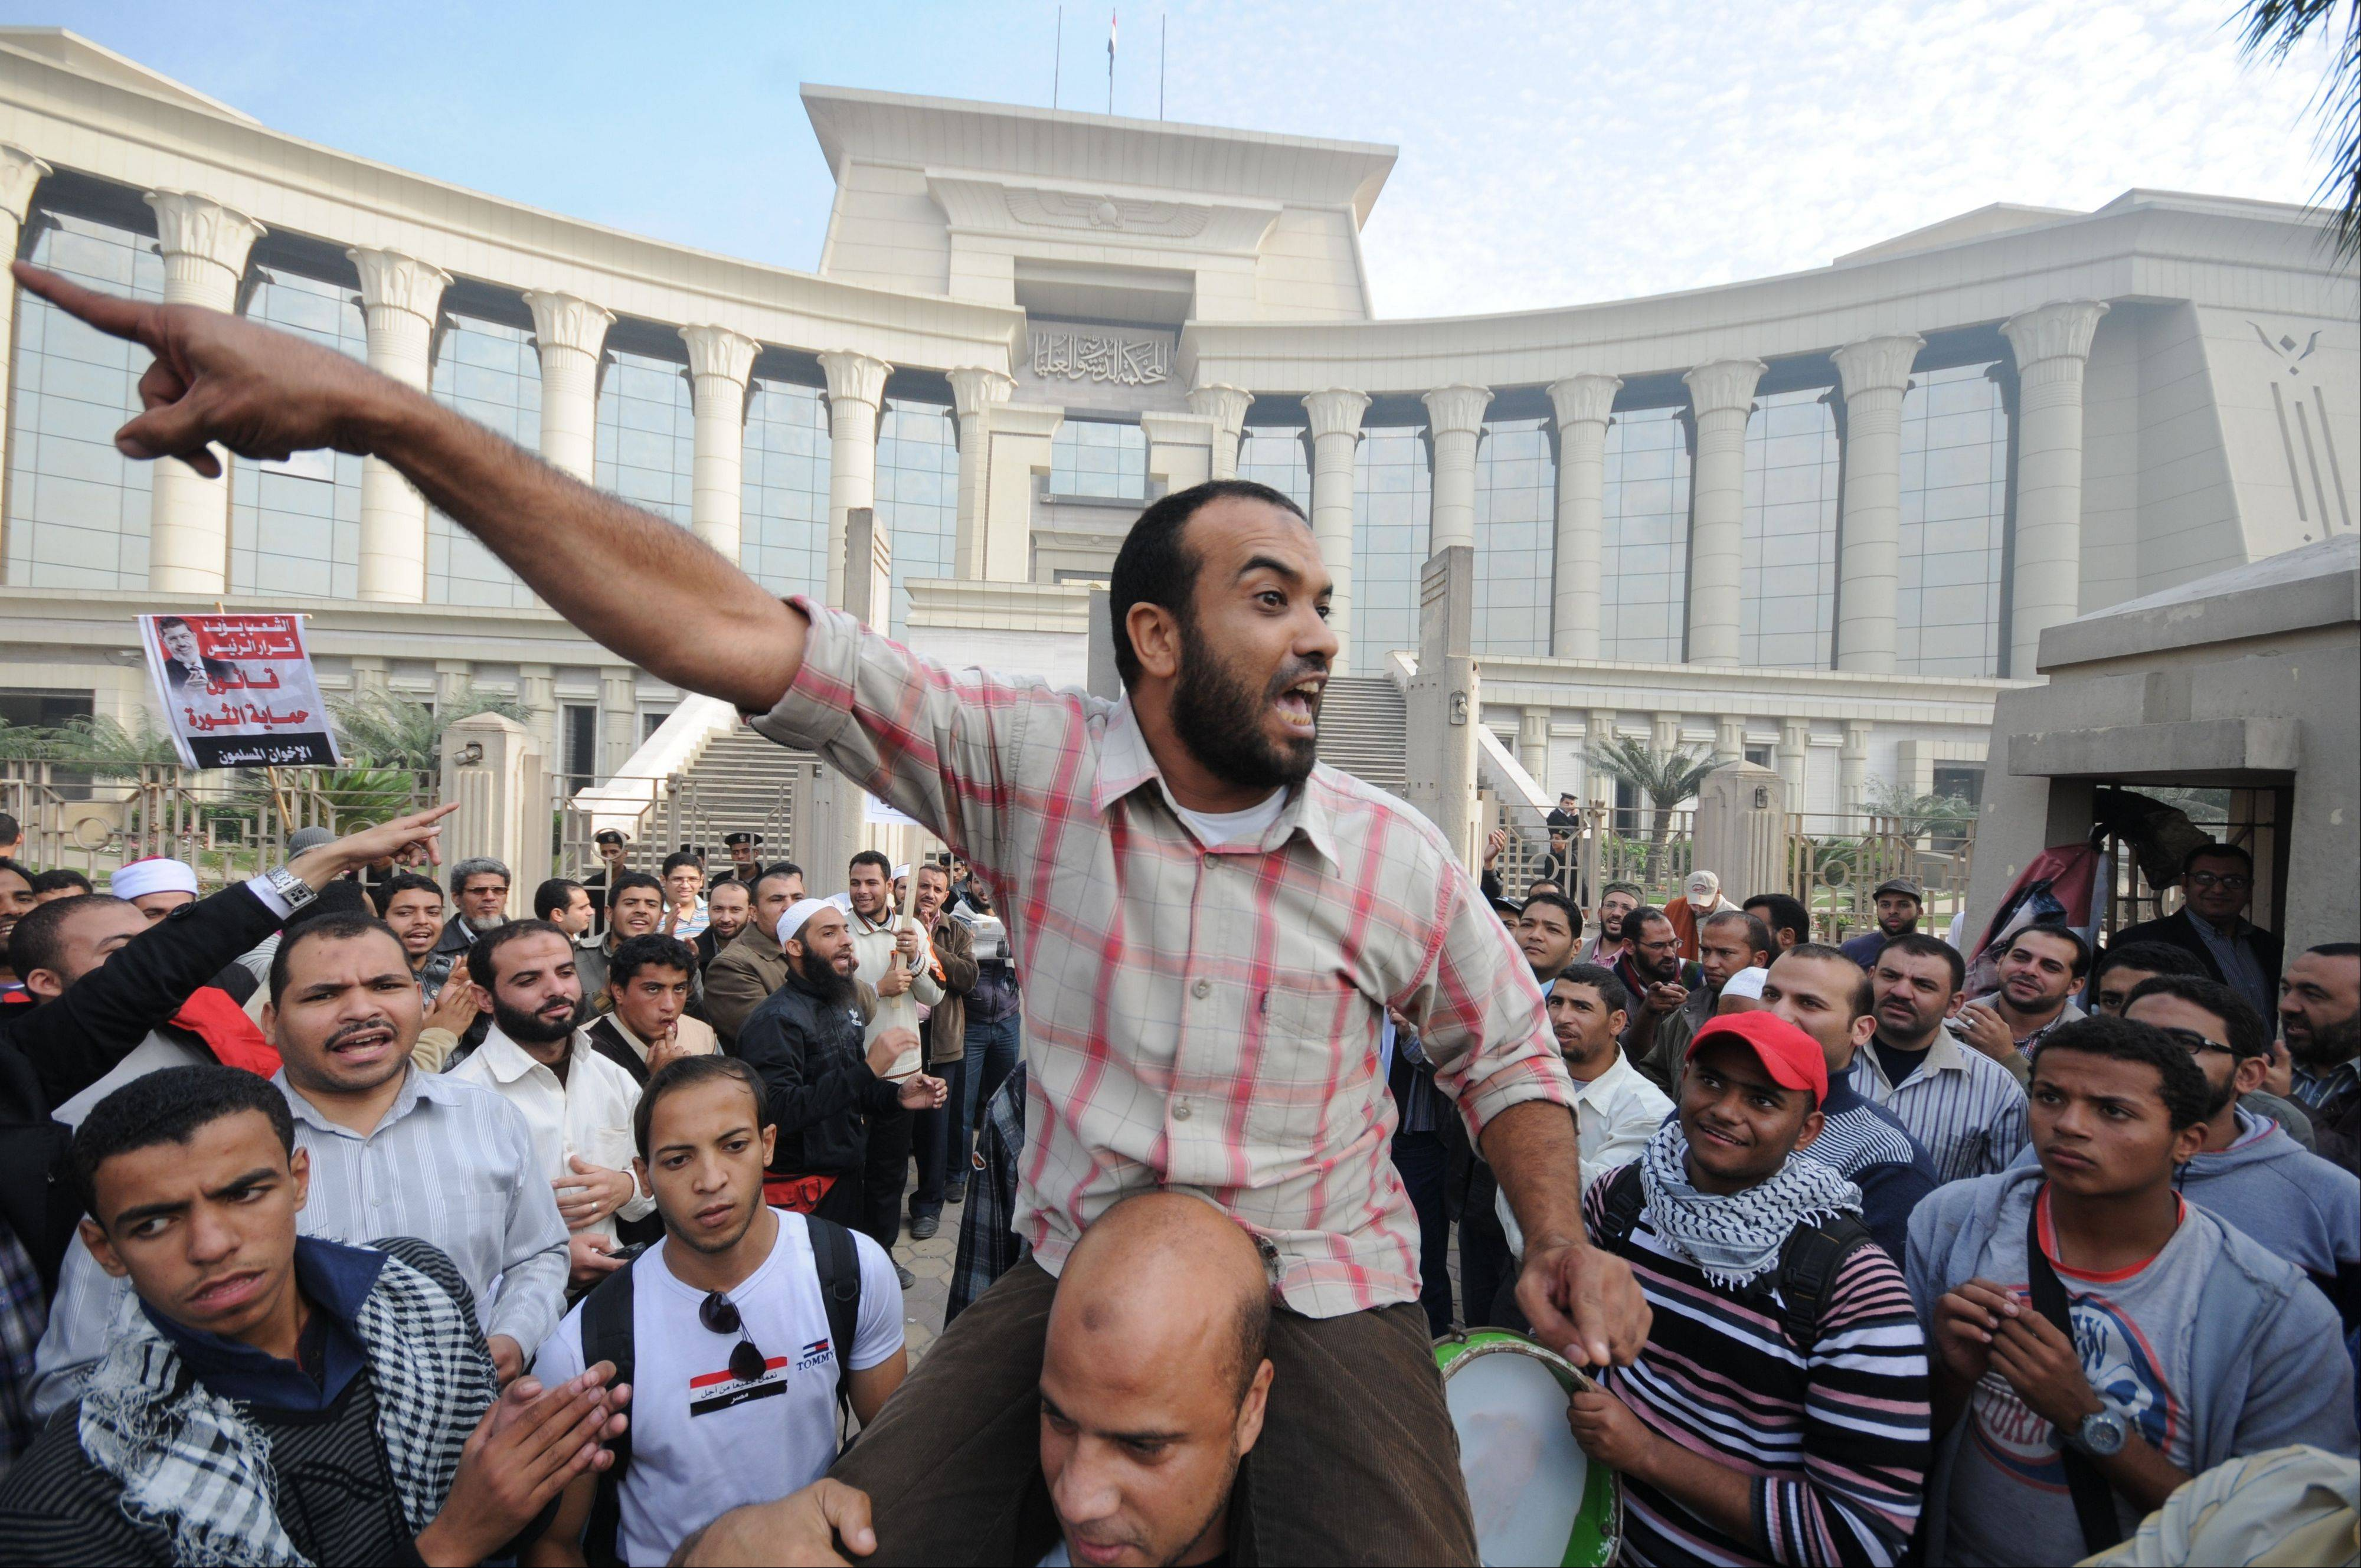 A demonstrator chants slogans as several thousand supporters of Islamist President Mohammed Morsi surrounded the Supreme Constitutional Court on Sunday to prevent the judges from entering and ruling on the legitimacy of the nation's Islamist-dominated constituent assembly.